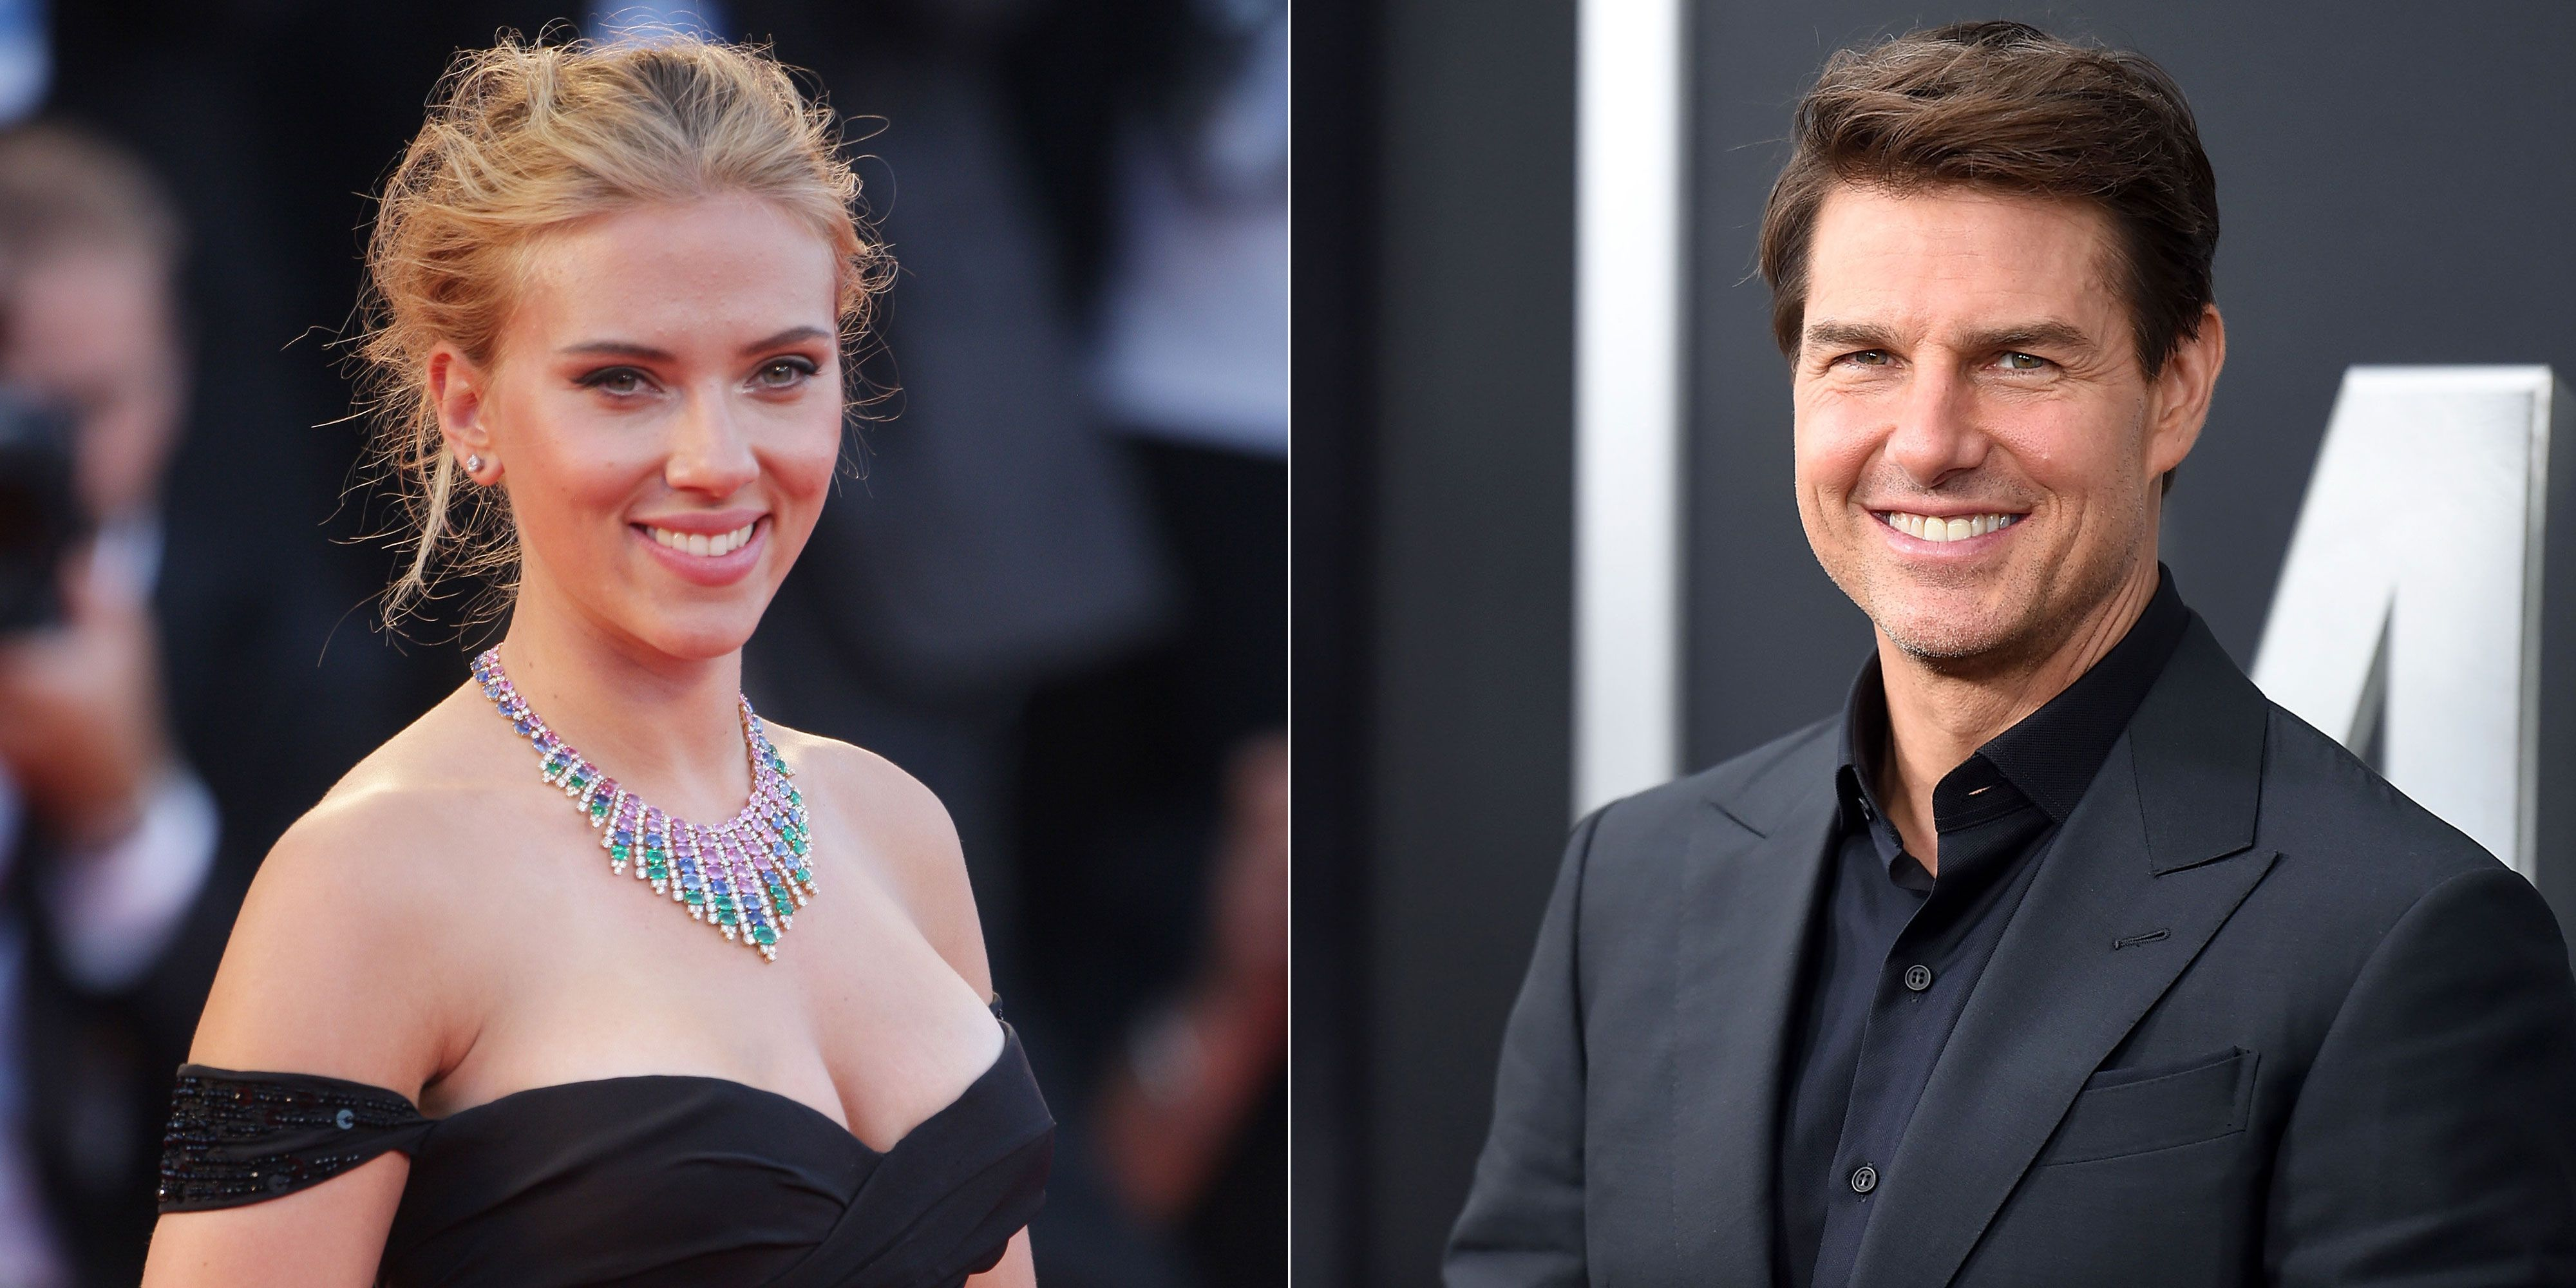 Scarlett Johansson Denies Demeaning Claims That She Auditioned To Date Tom Cruise